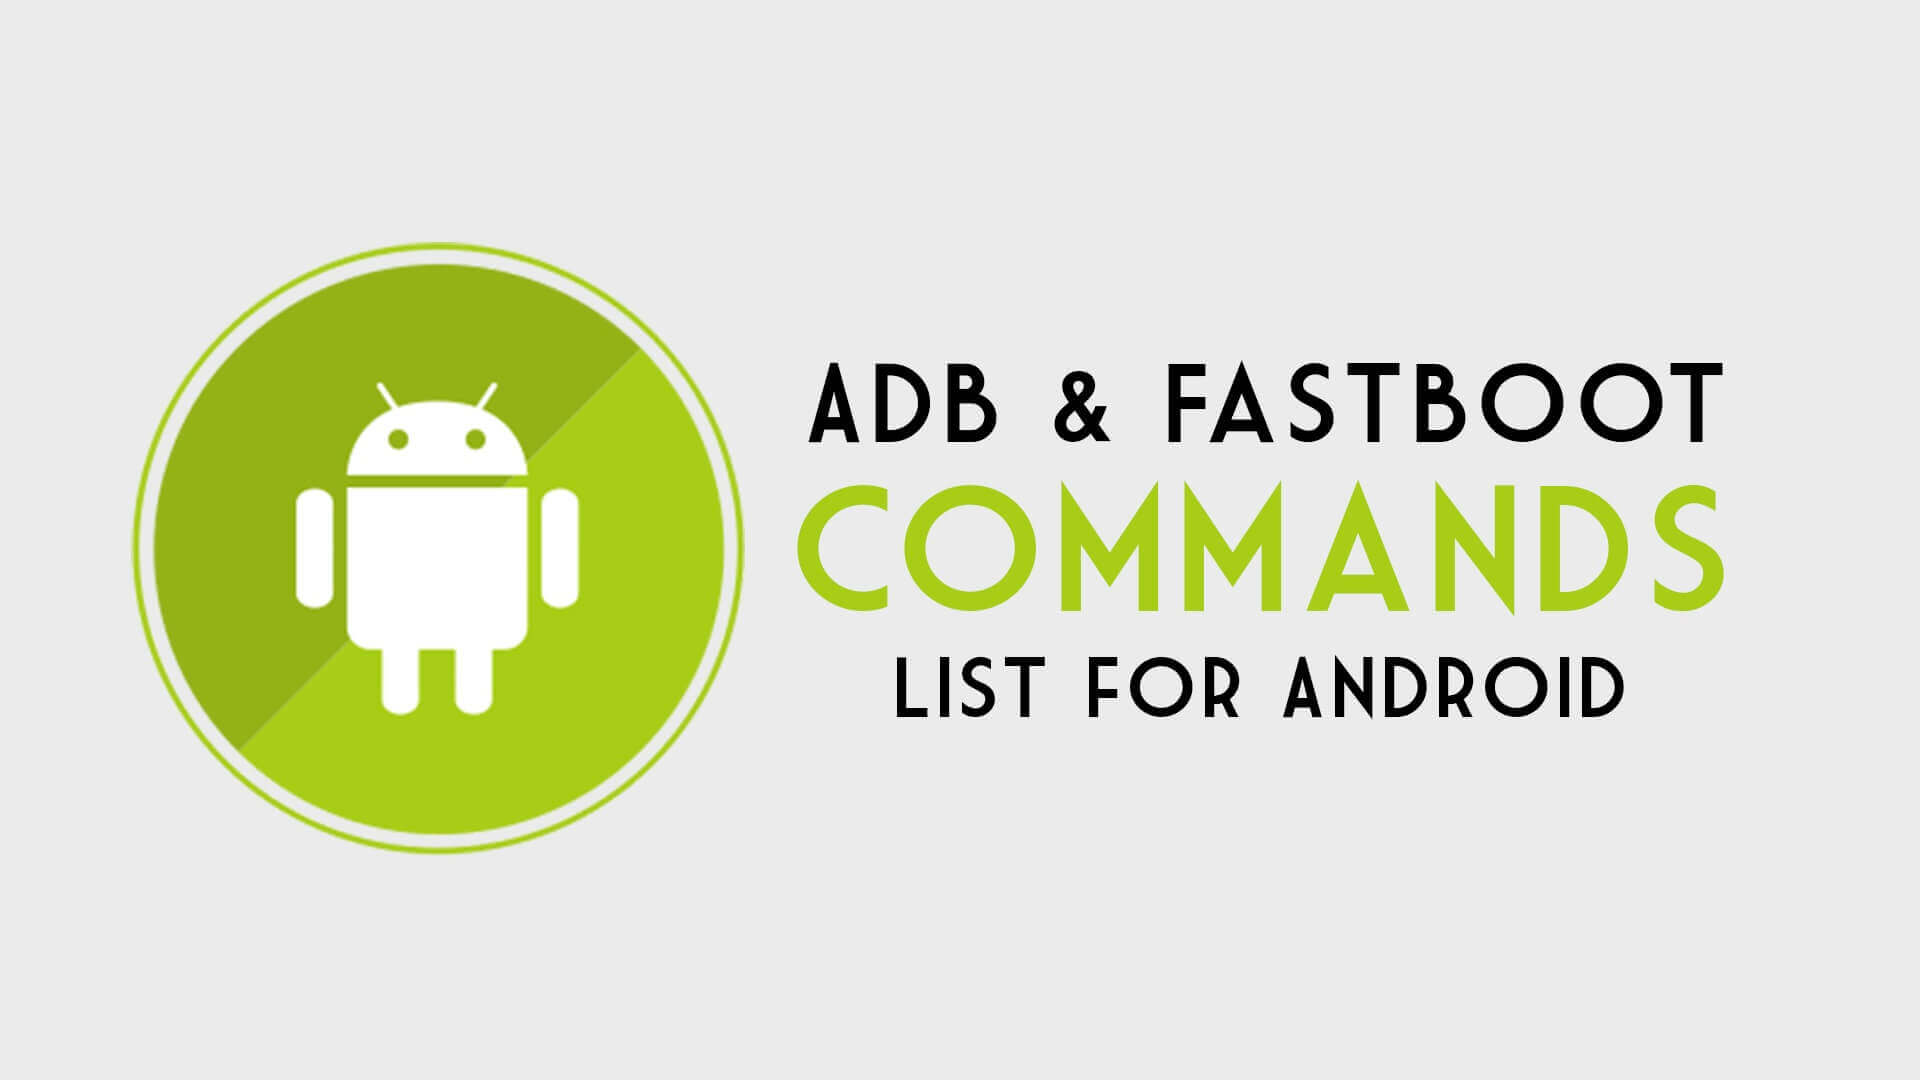 ADB Fastboot Commands for Android